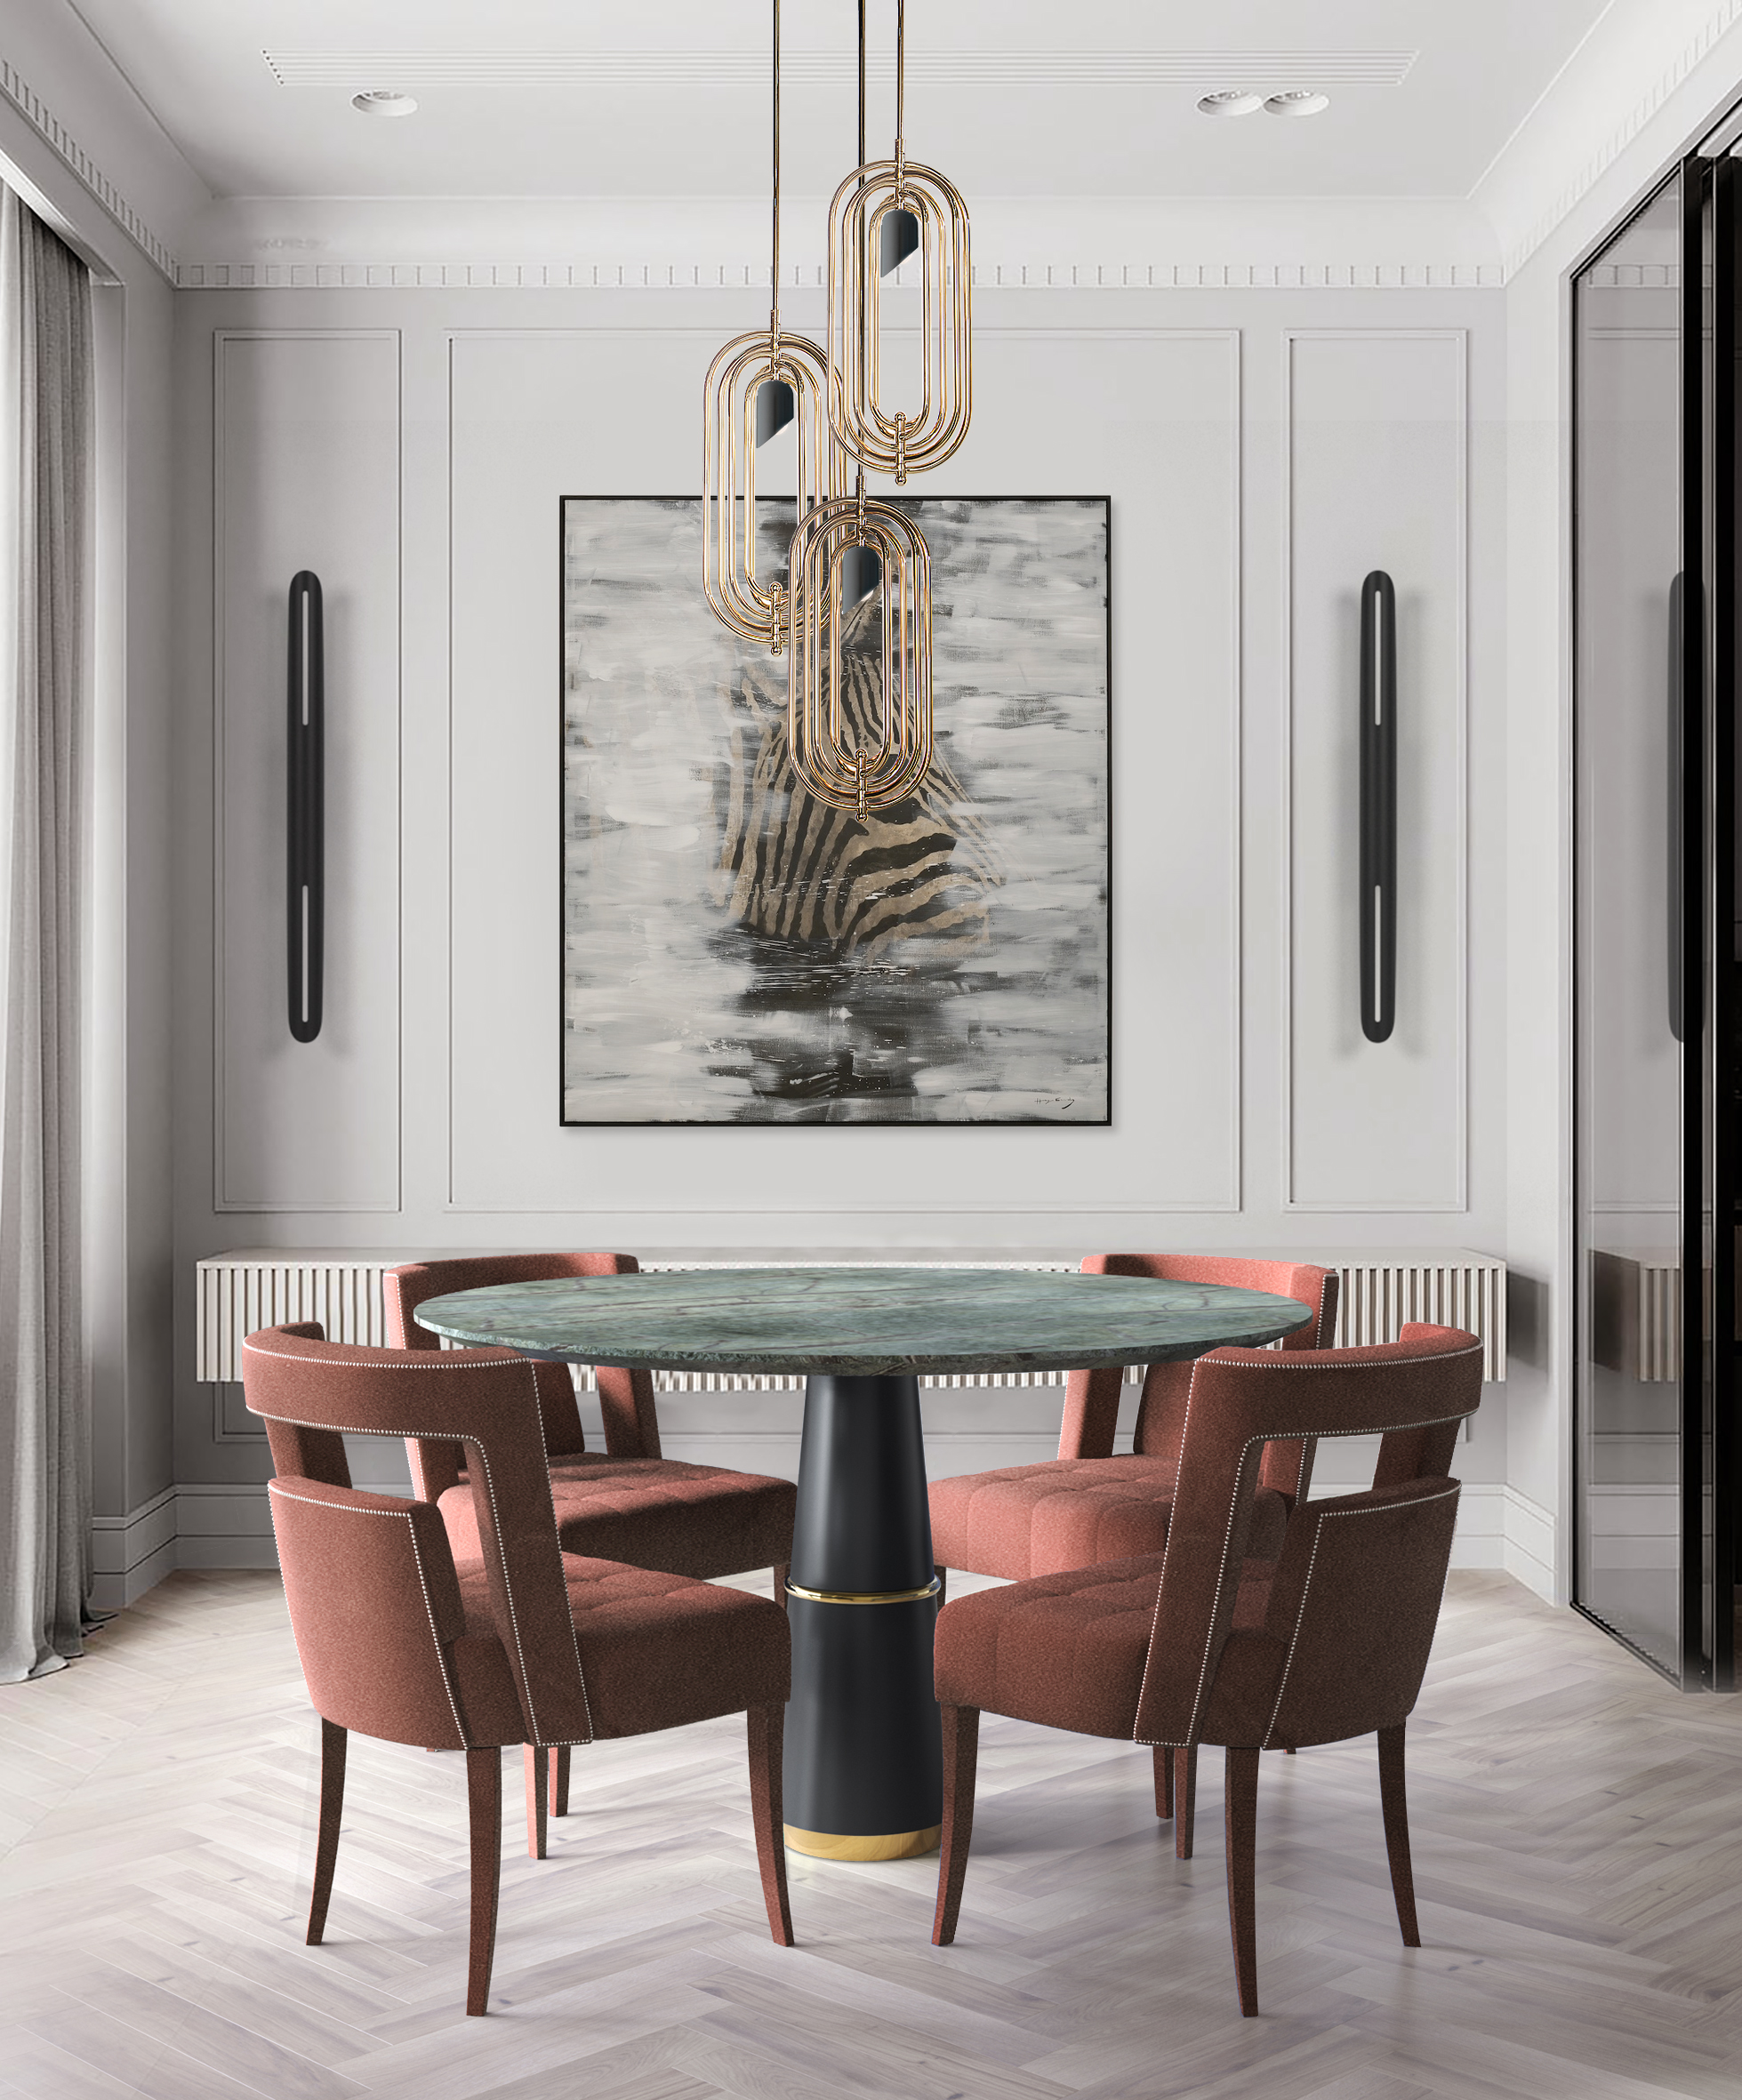 5 Mid Century Dining Room Lighting Pieces That Made Our Family Dinners Shine in September!